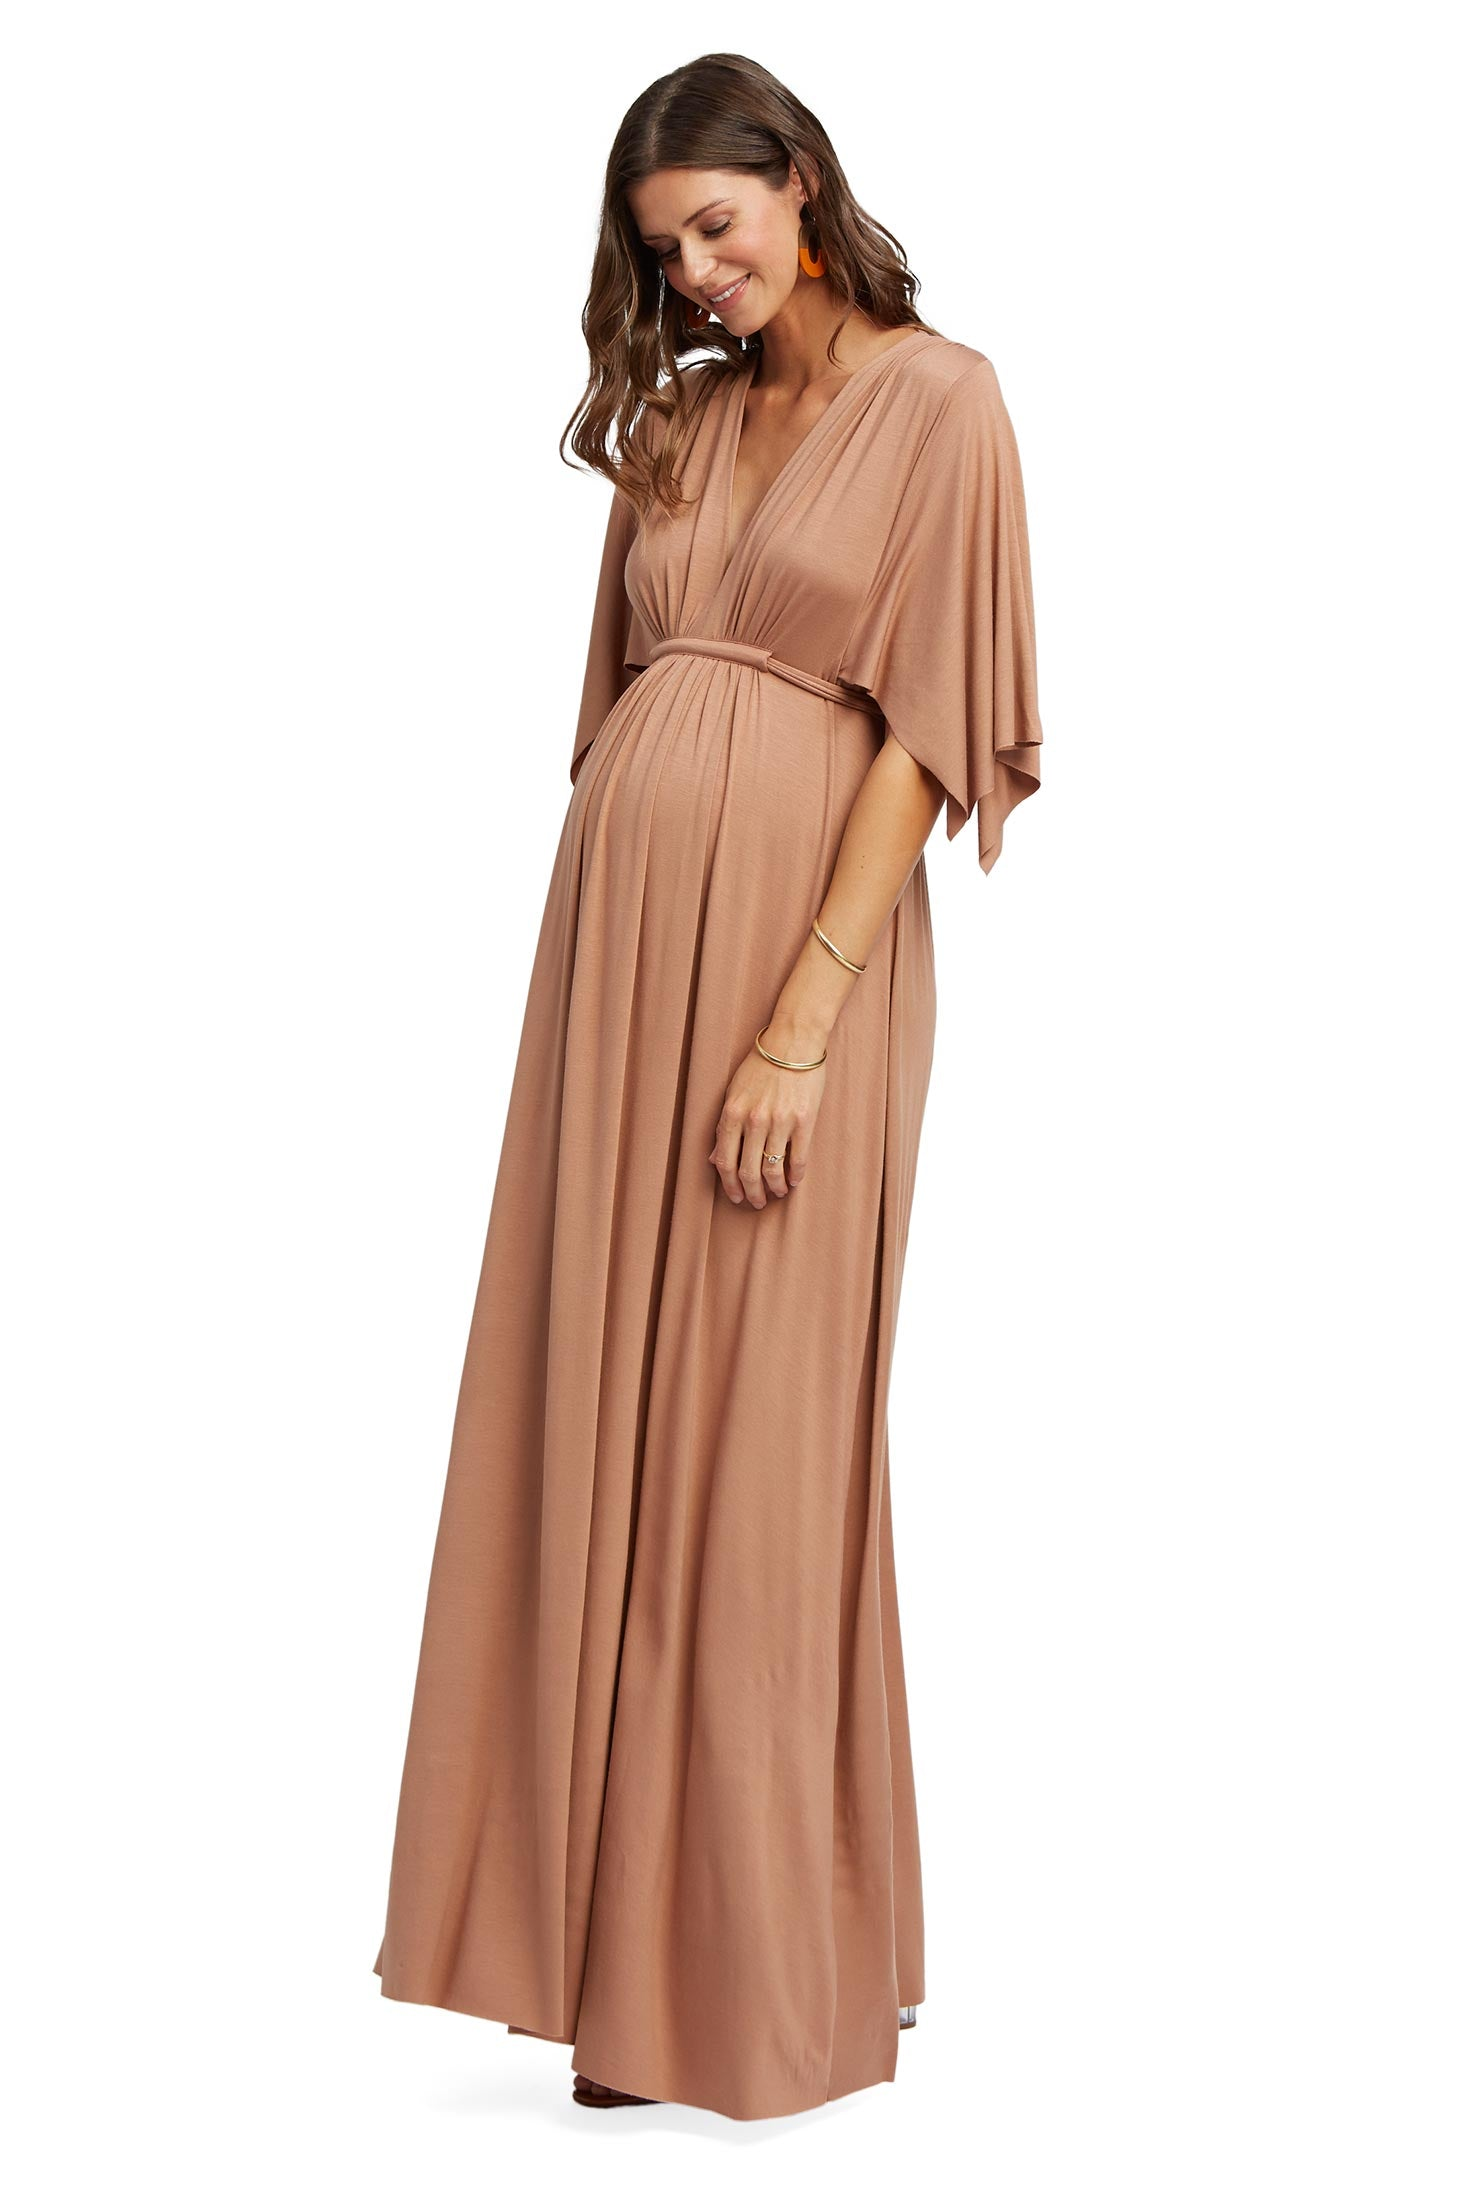 Long Caftan Dress - Dulce, Maternity